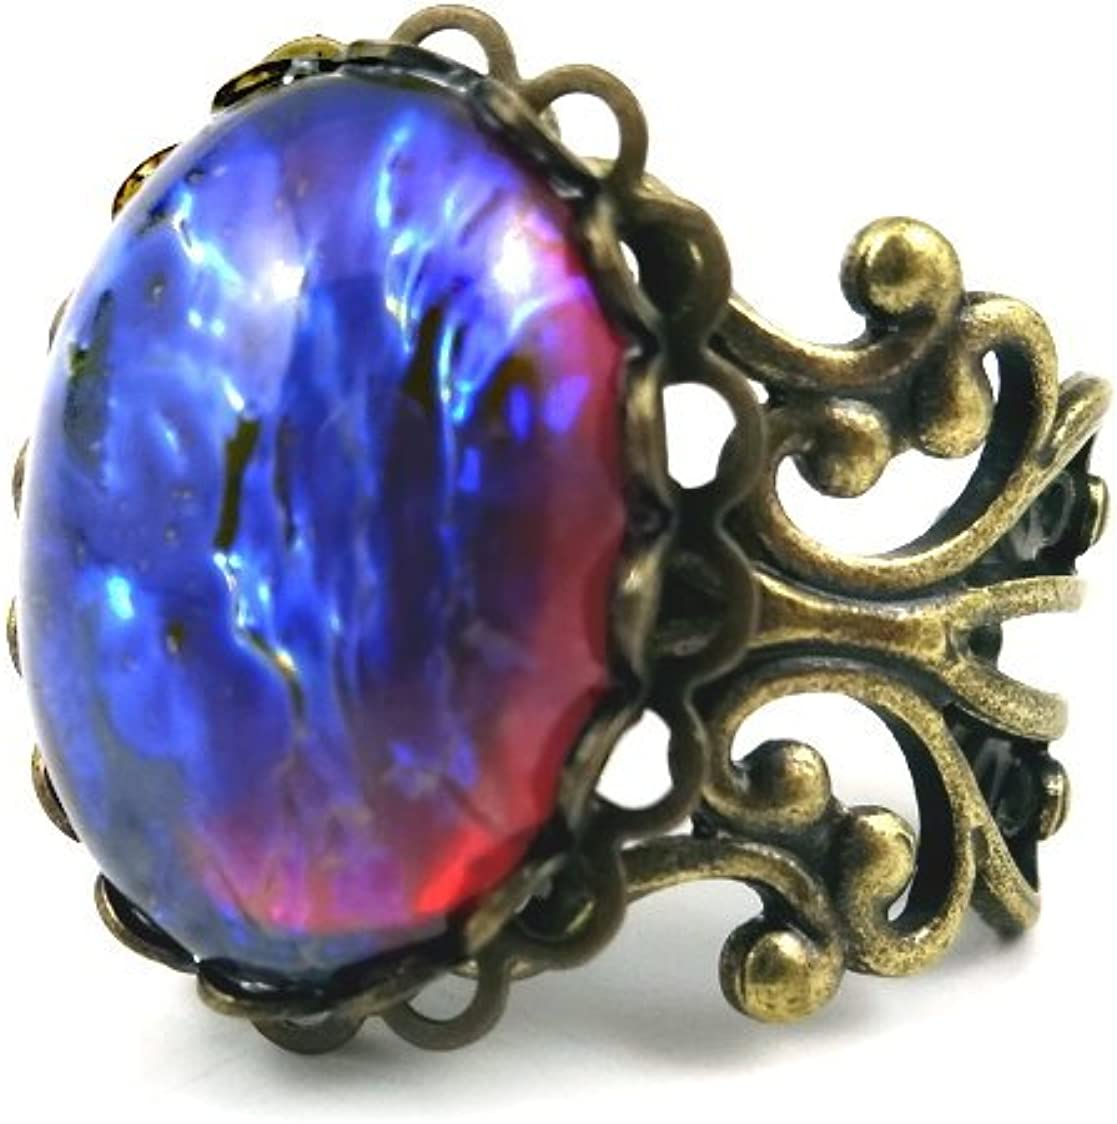 DRAGONS BREATH OPAL RING SILVER PLATED CZECH GLASS MEXICAN FIRE OPALIZED STONE WITH ADJUSTABLE BAND